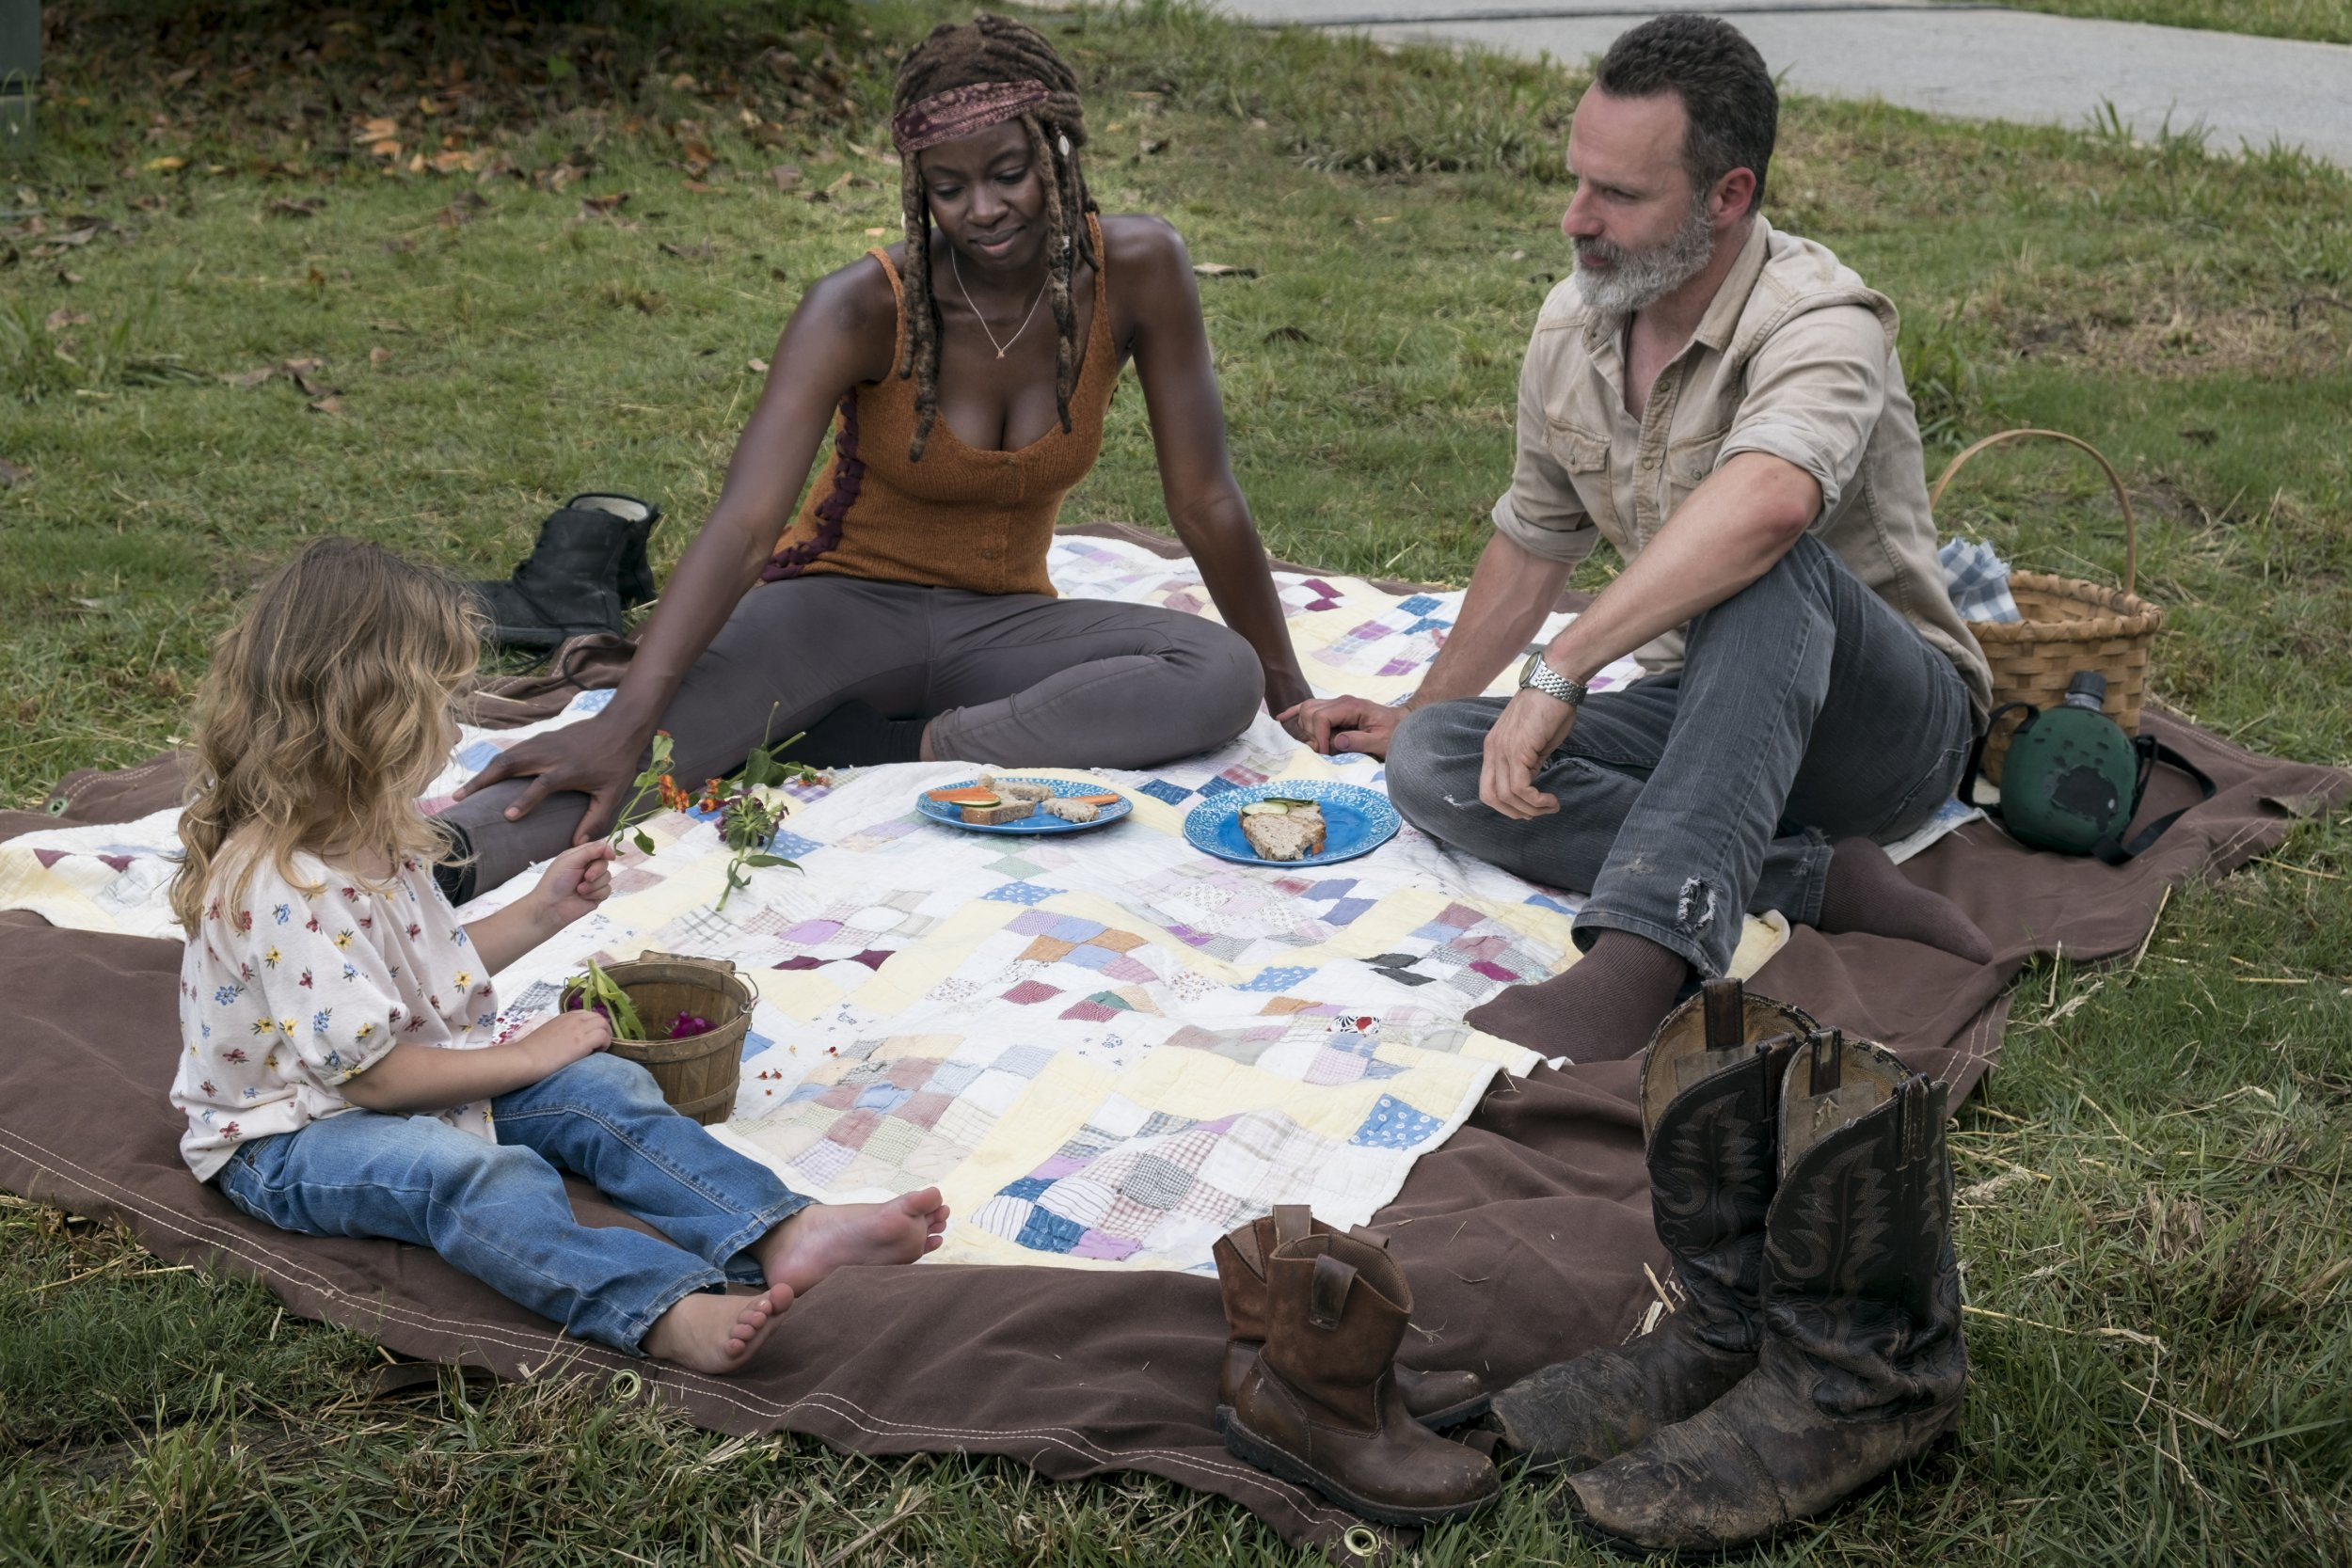 Walking Dead Picnic 9x03